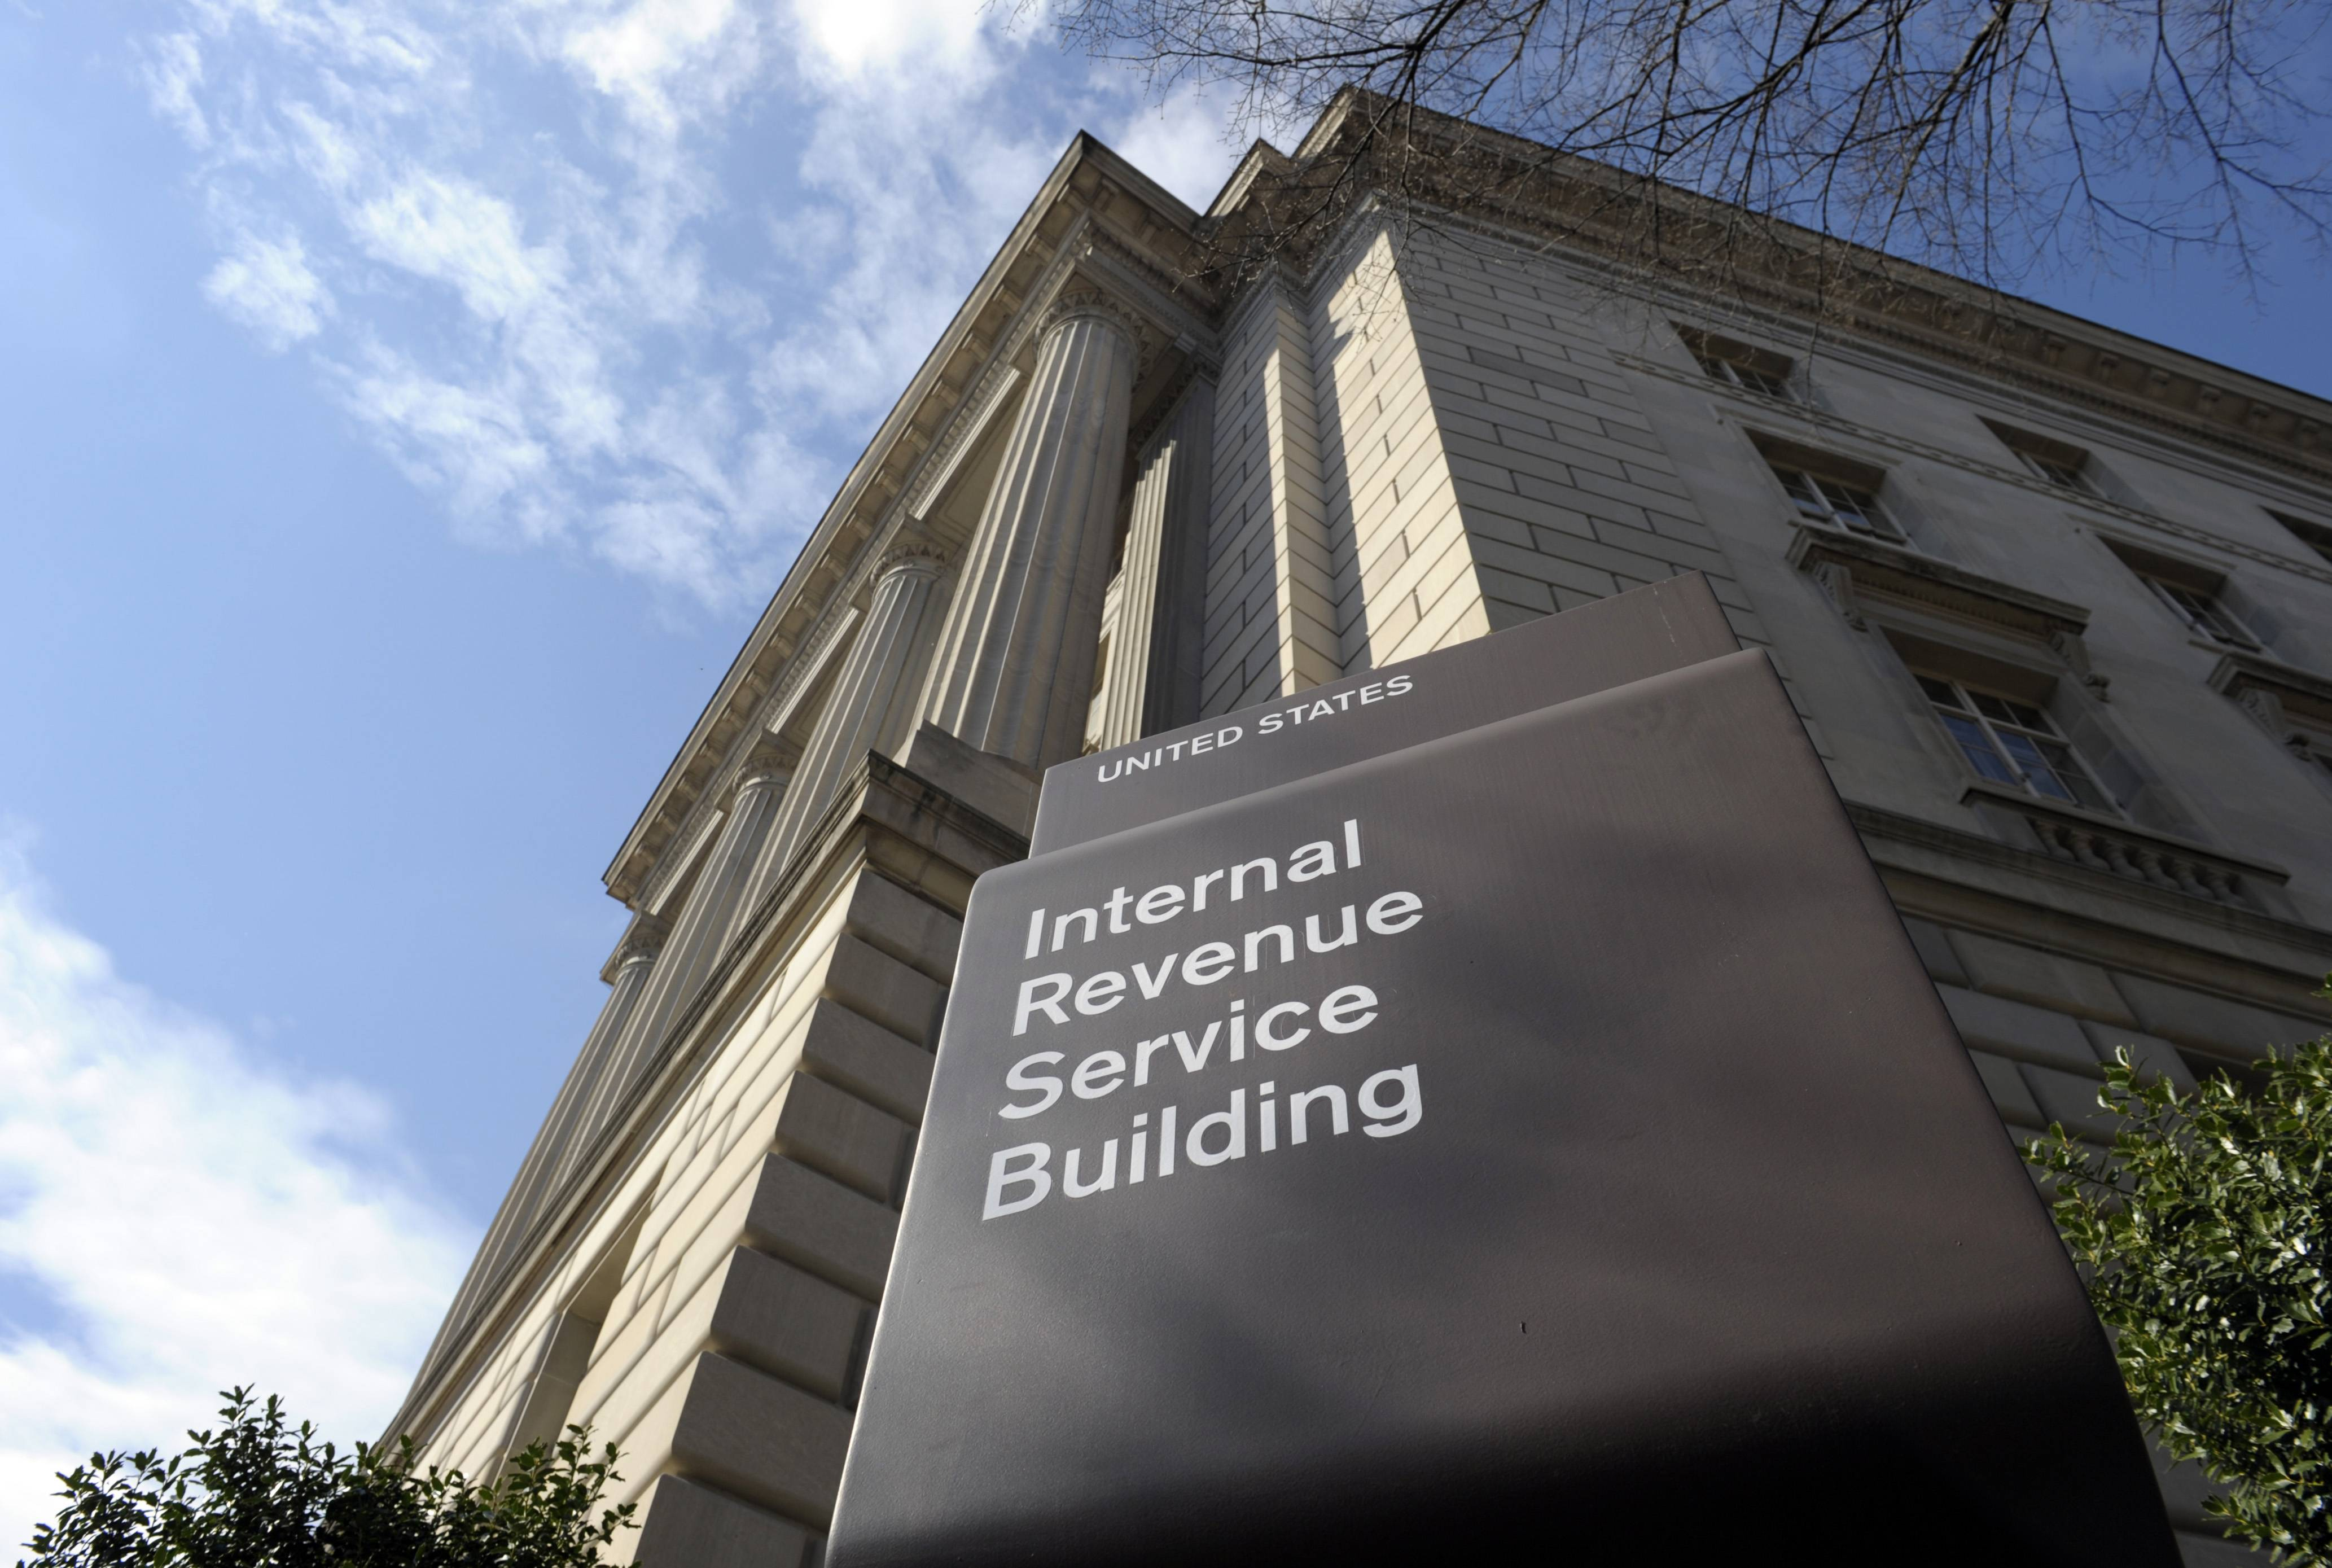 Struggling to figure out your federal tax return? You're not alone, but you're in the minority. With the tax filing deadline looming on April 15, a majority of Americans say completing a federal tax return is easy, according to a new poll. The photo shows the exterior of the Internal Revenue Service building in Washington.